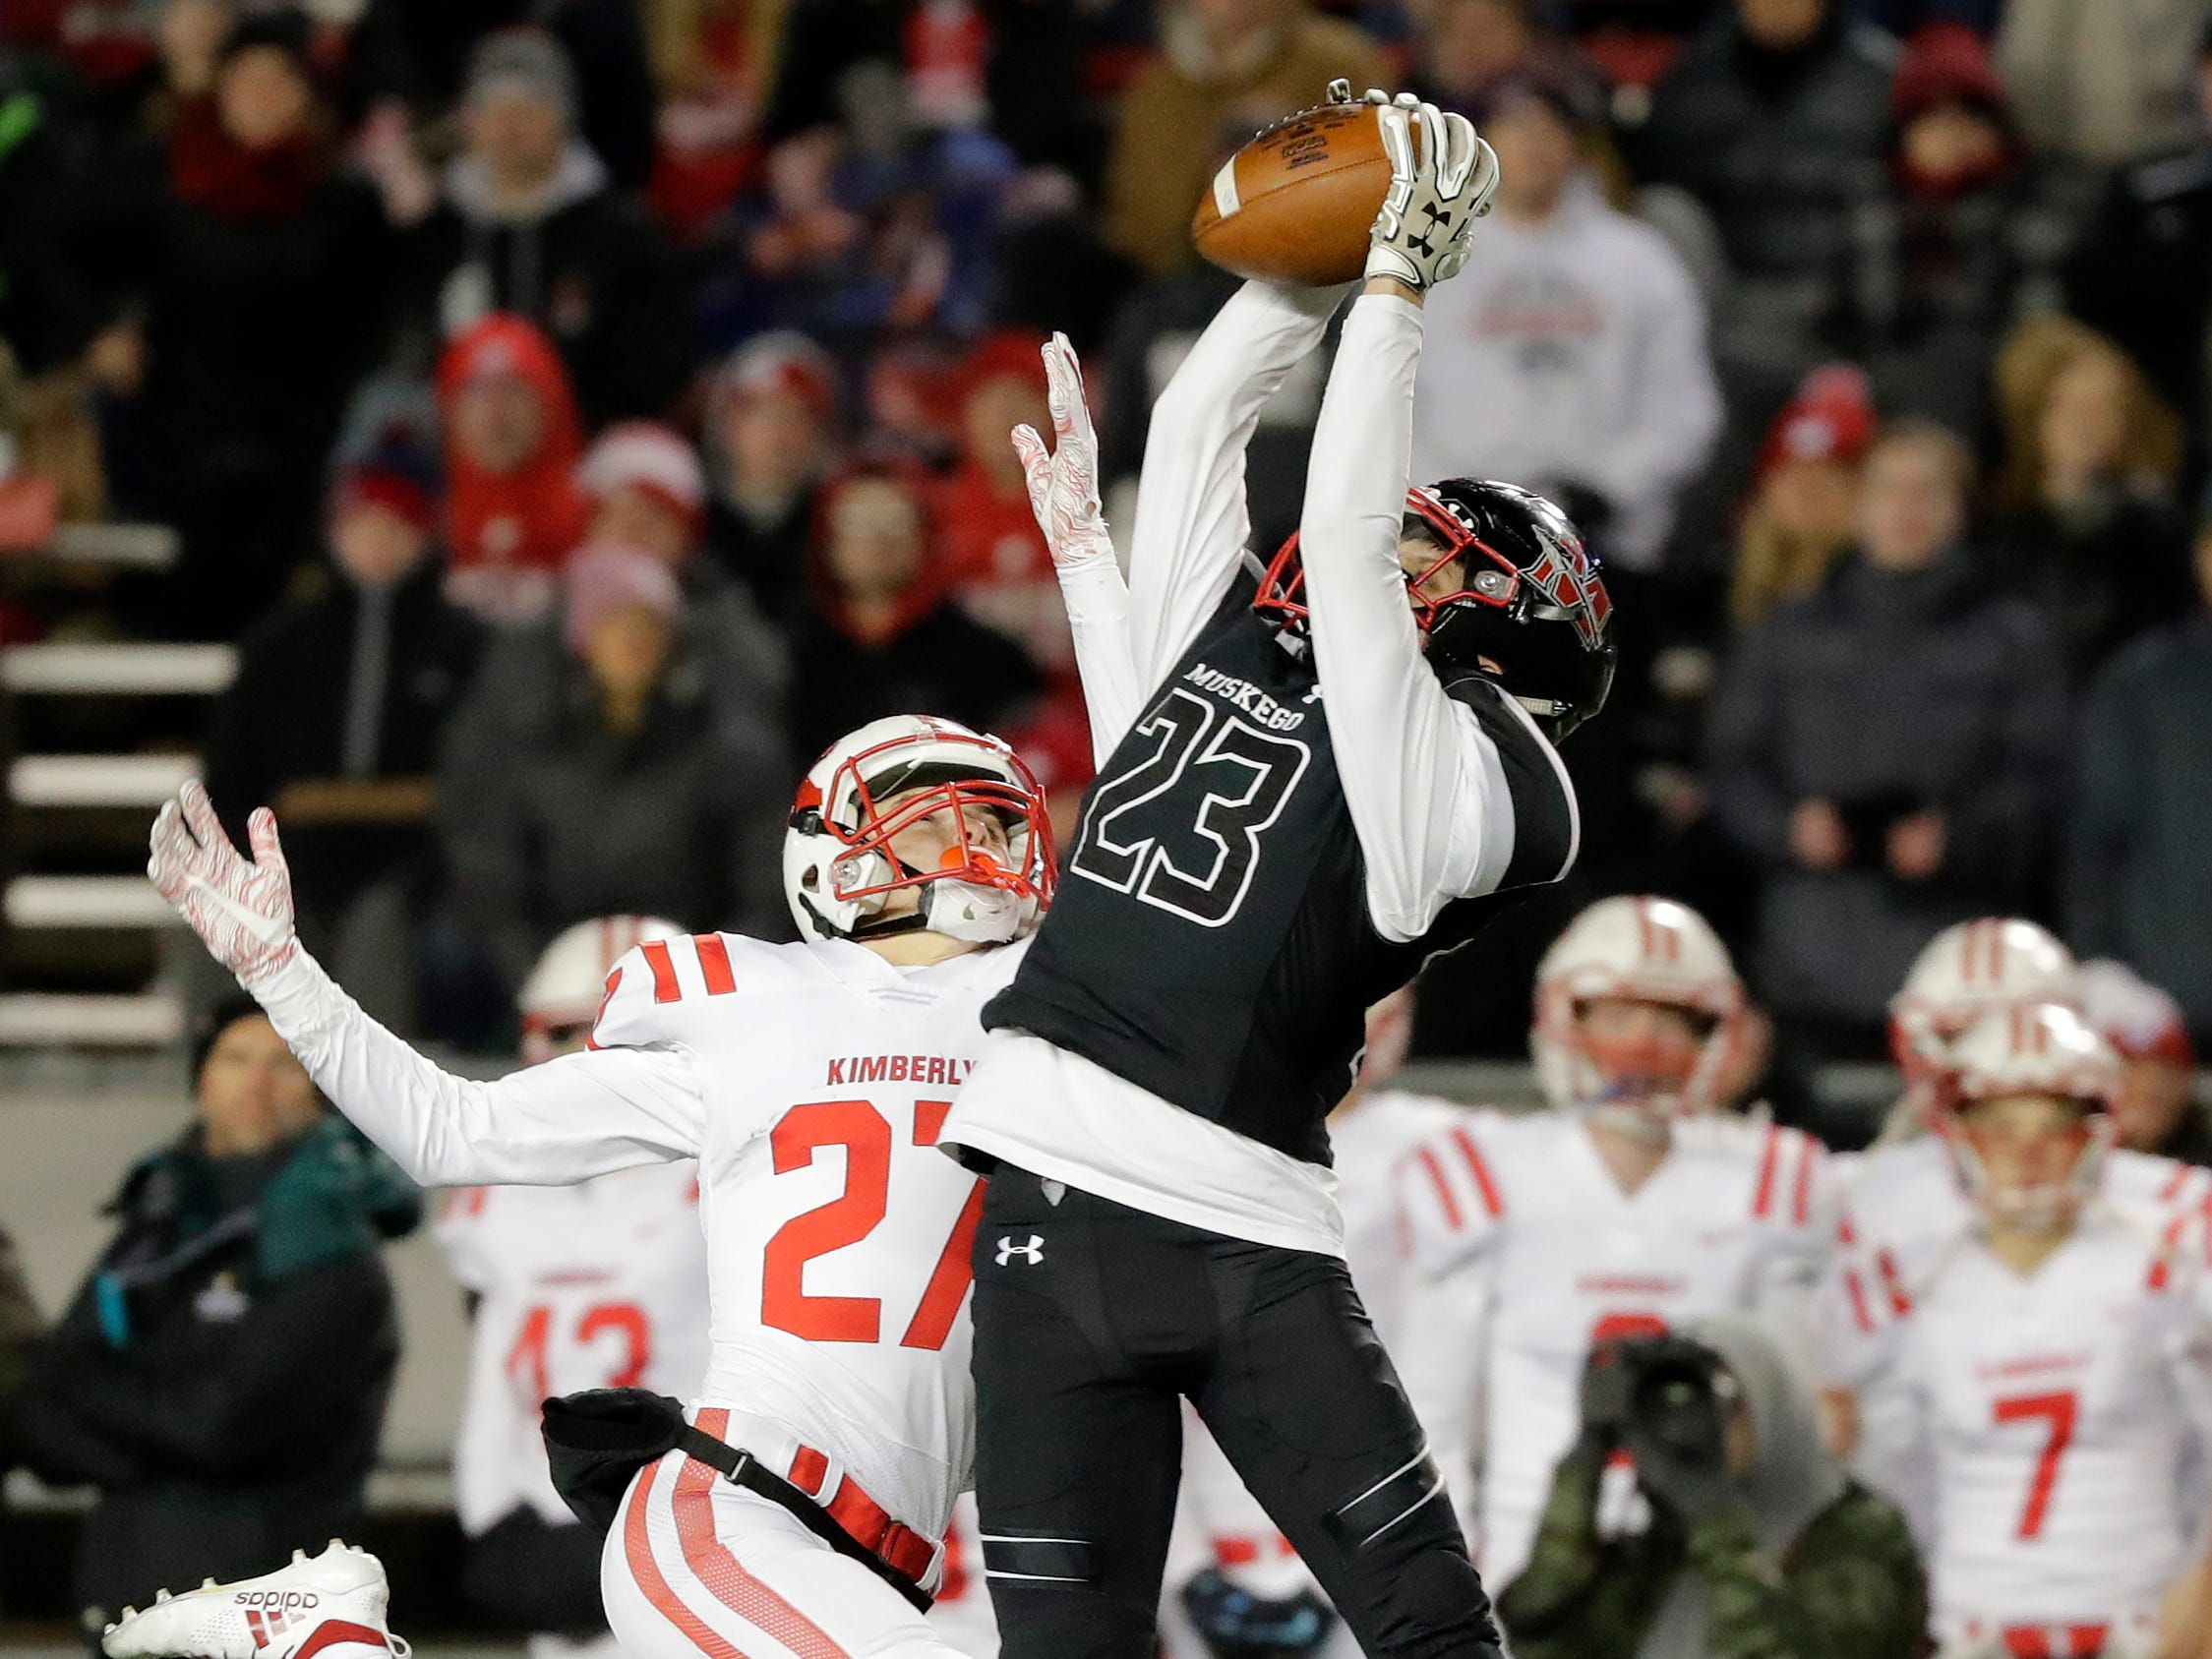 Muskego's Joseph Mlachnik (23) breaks up a pass intended for Kimberly's Trey Tennessen (27) in the WIAA Division 1 championship game at Camp Randall Stadium on Friday, November 16, 2018 in Madison, Wis.